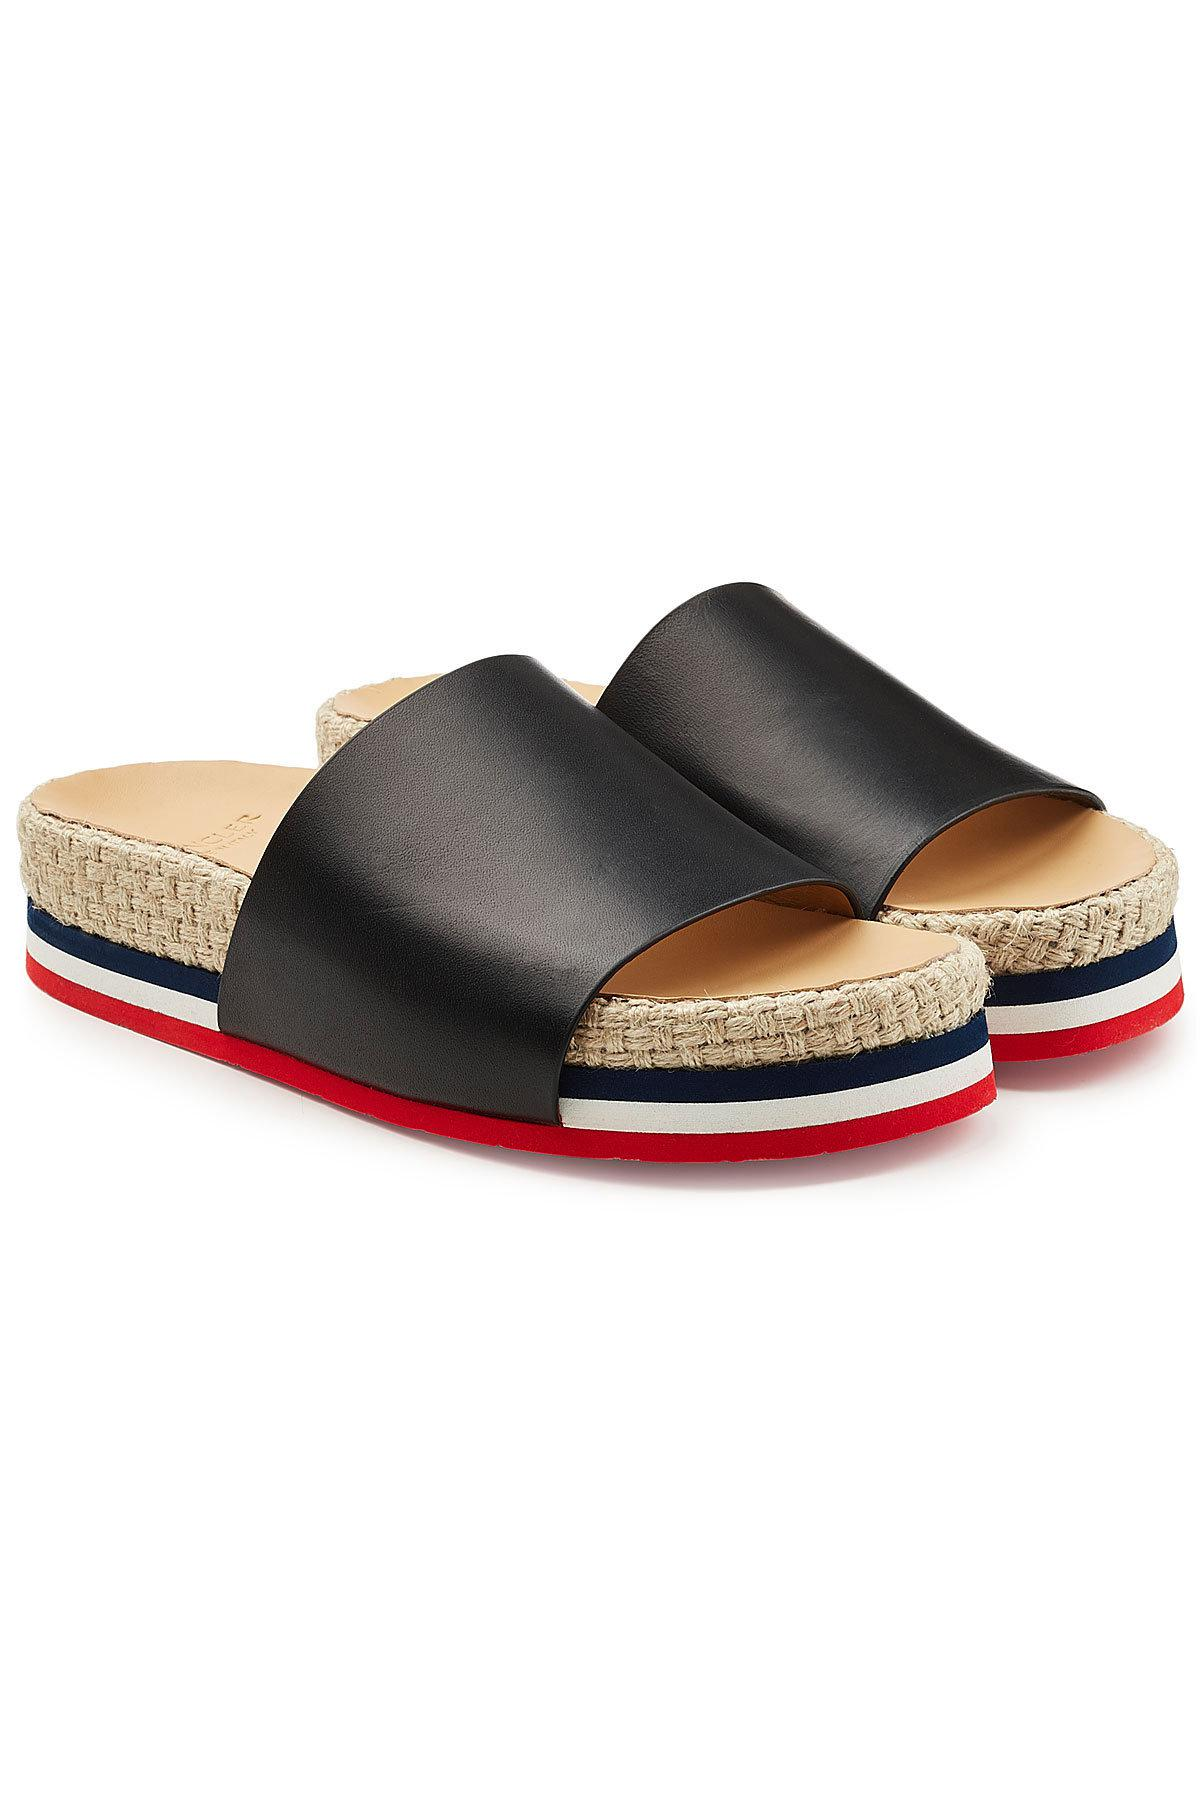 Pre-owned - Leather sandal Moncler A2Wl1g